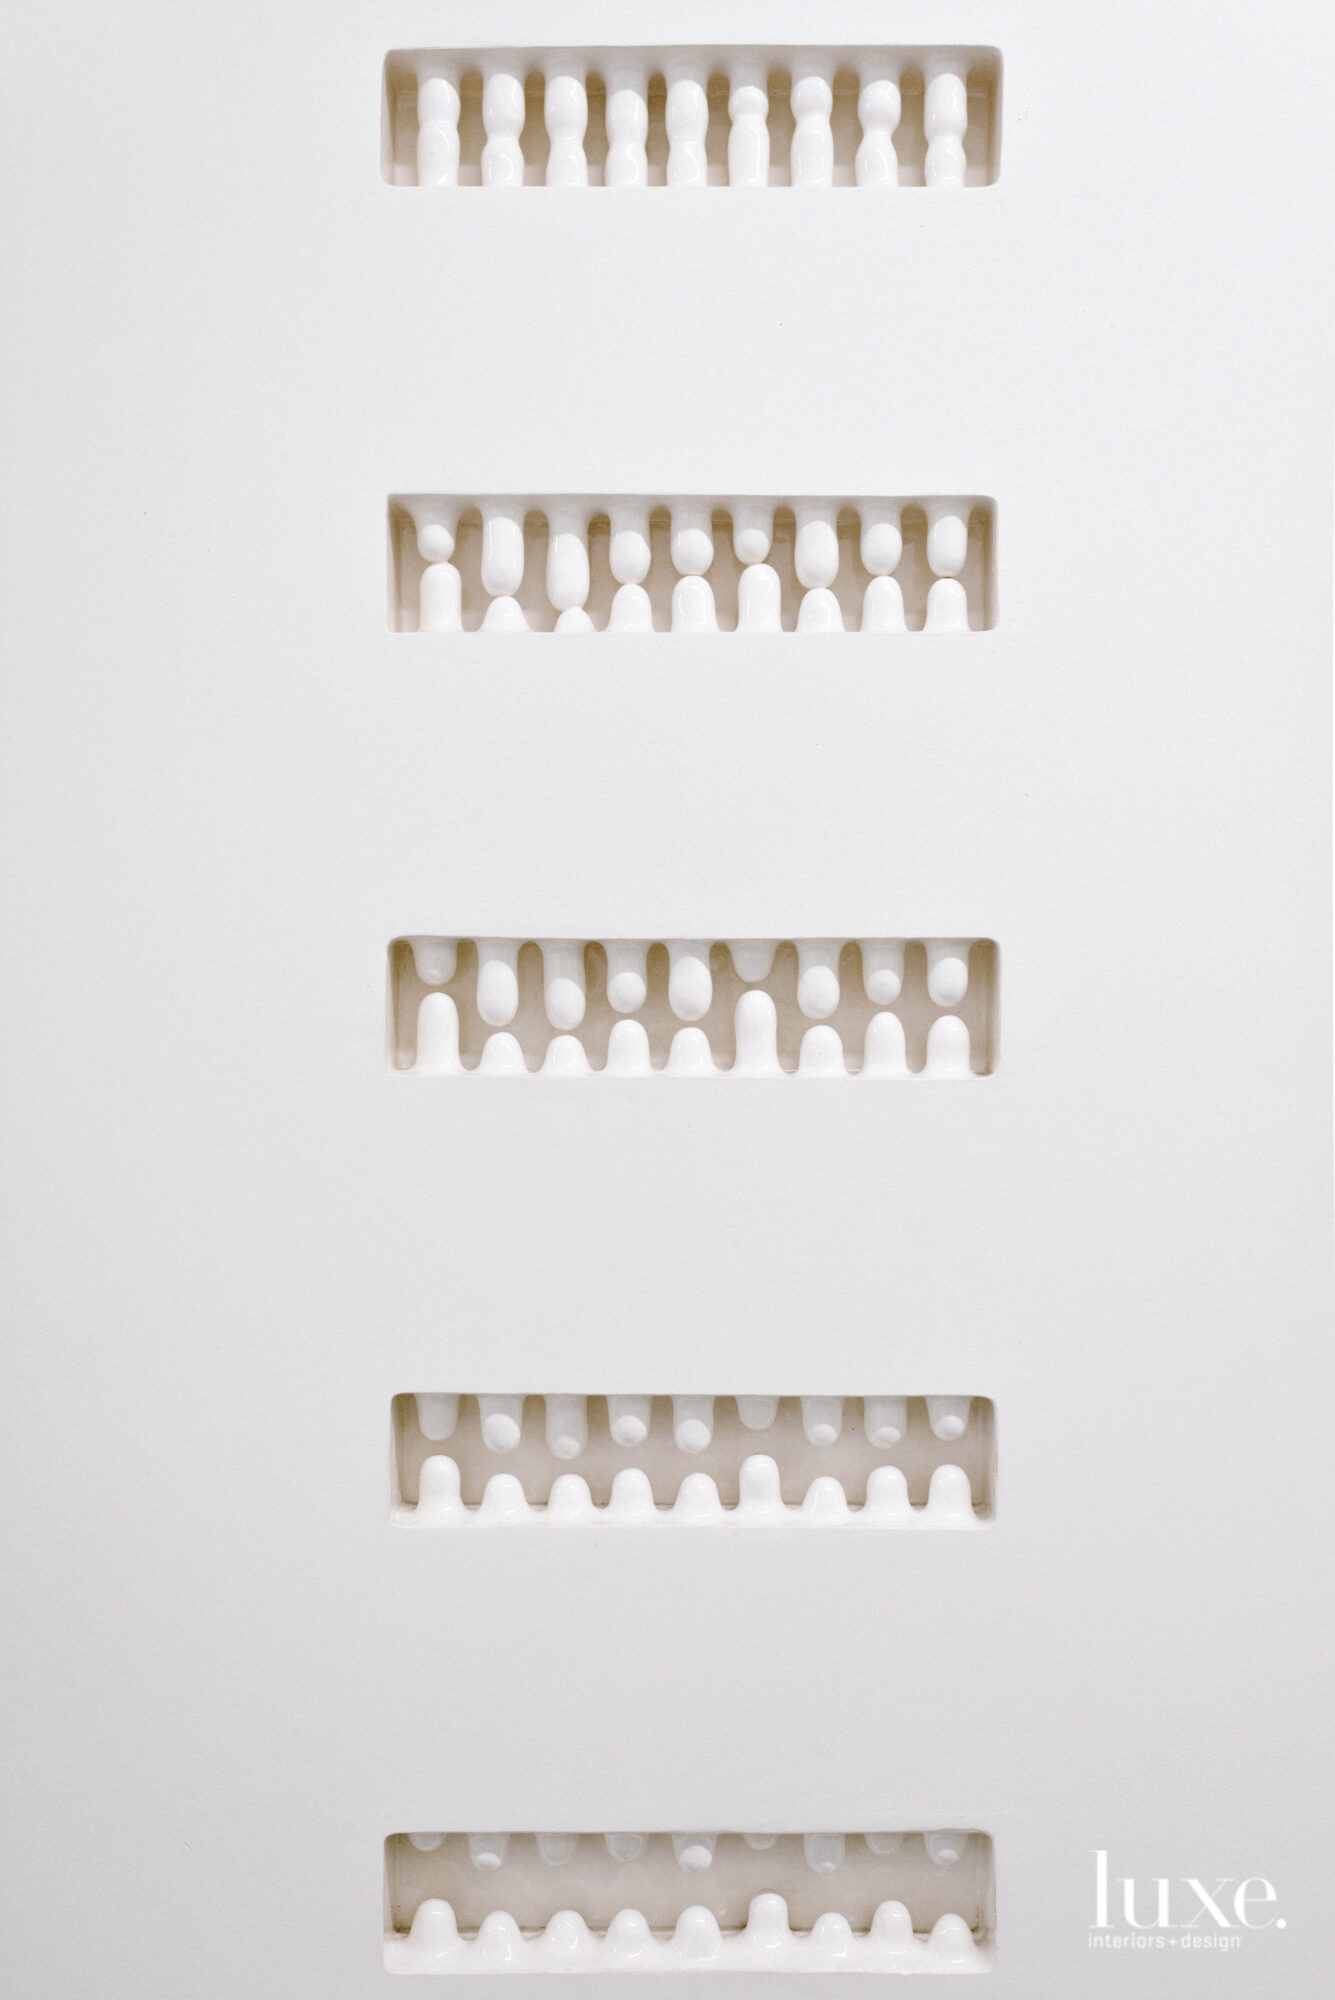 Ceramic pieces inset into a wall